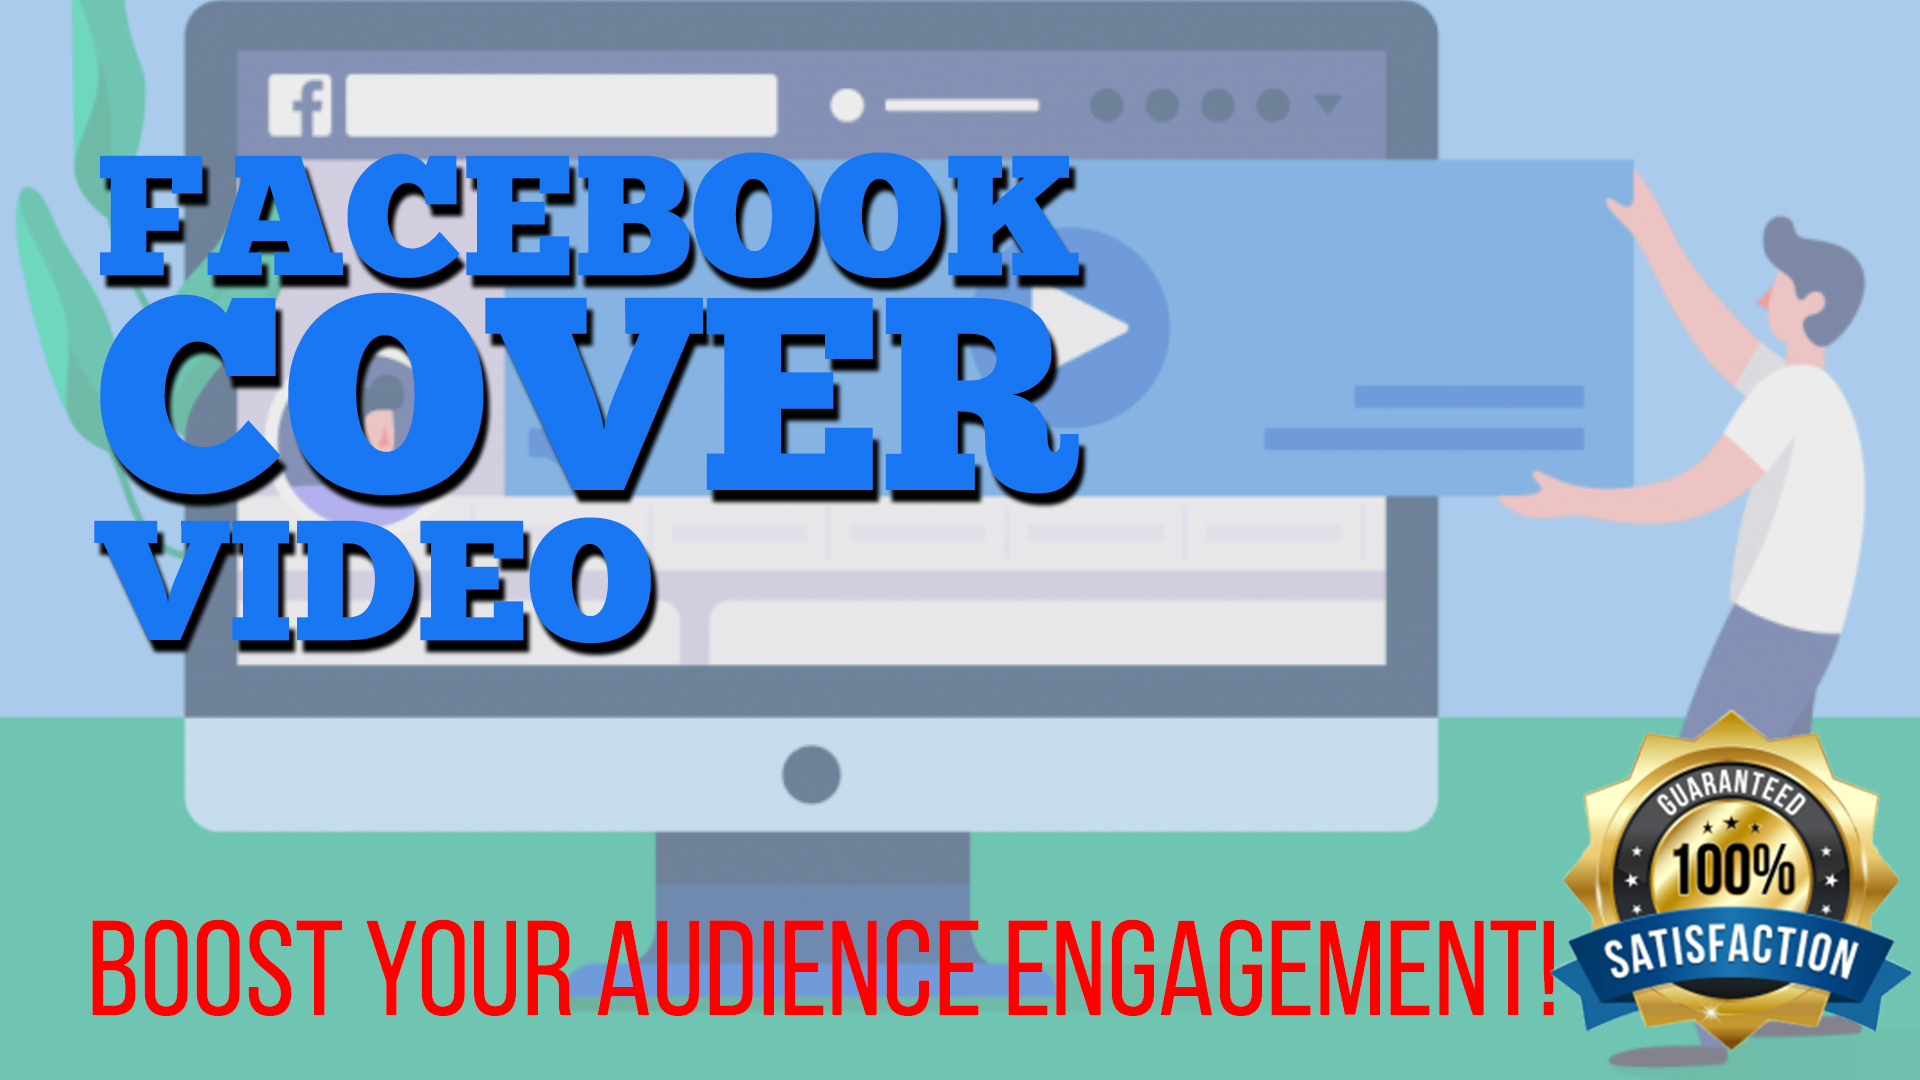 Create awesome FACEBOOK COVER VIDEO for you